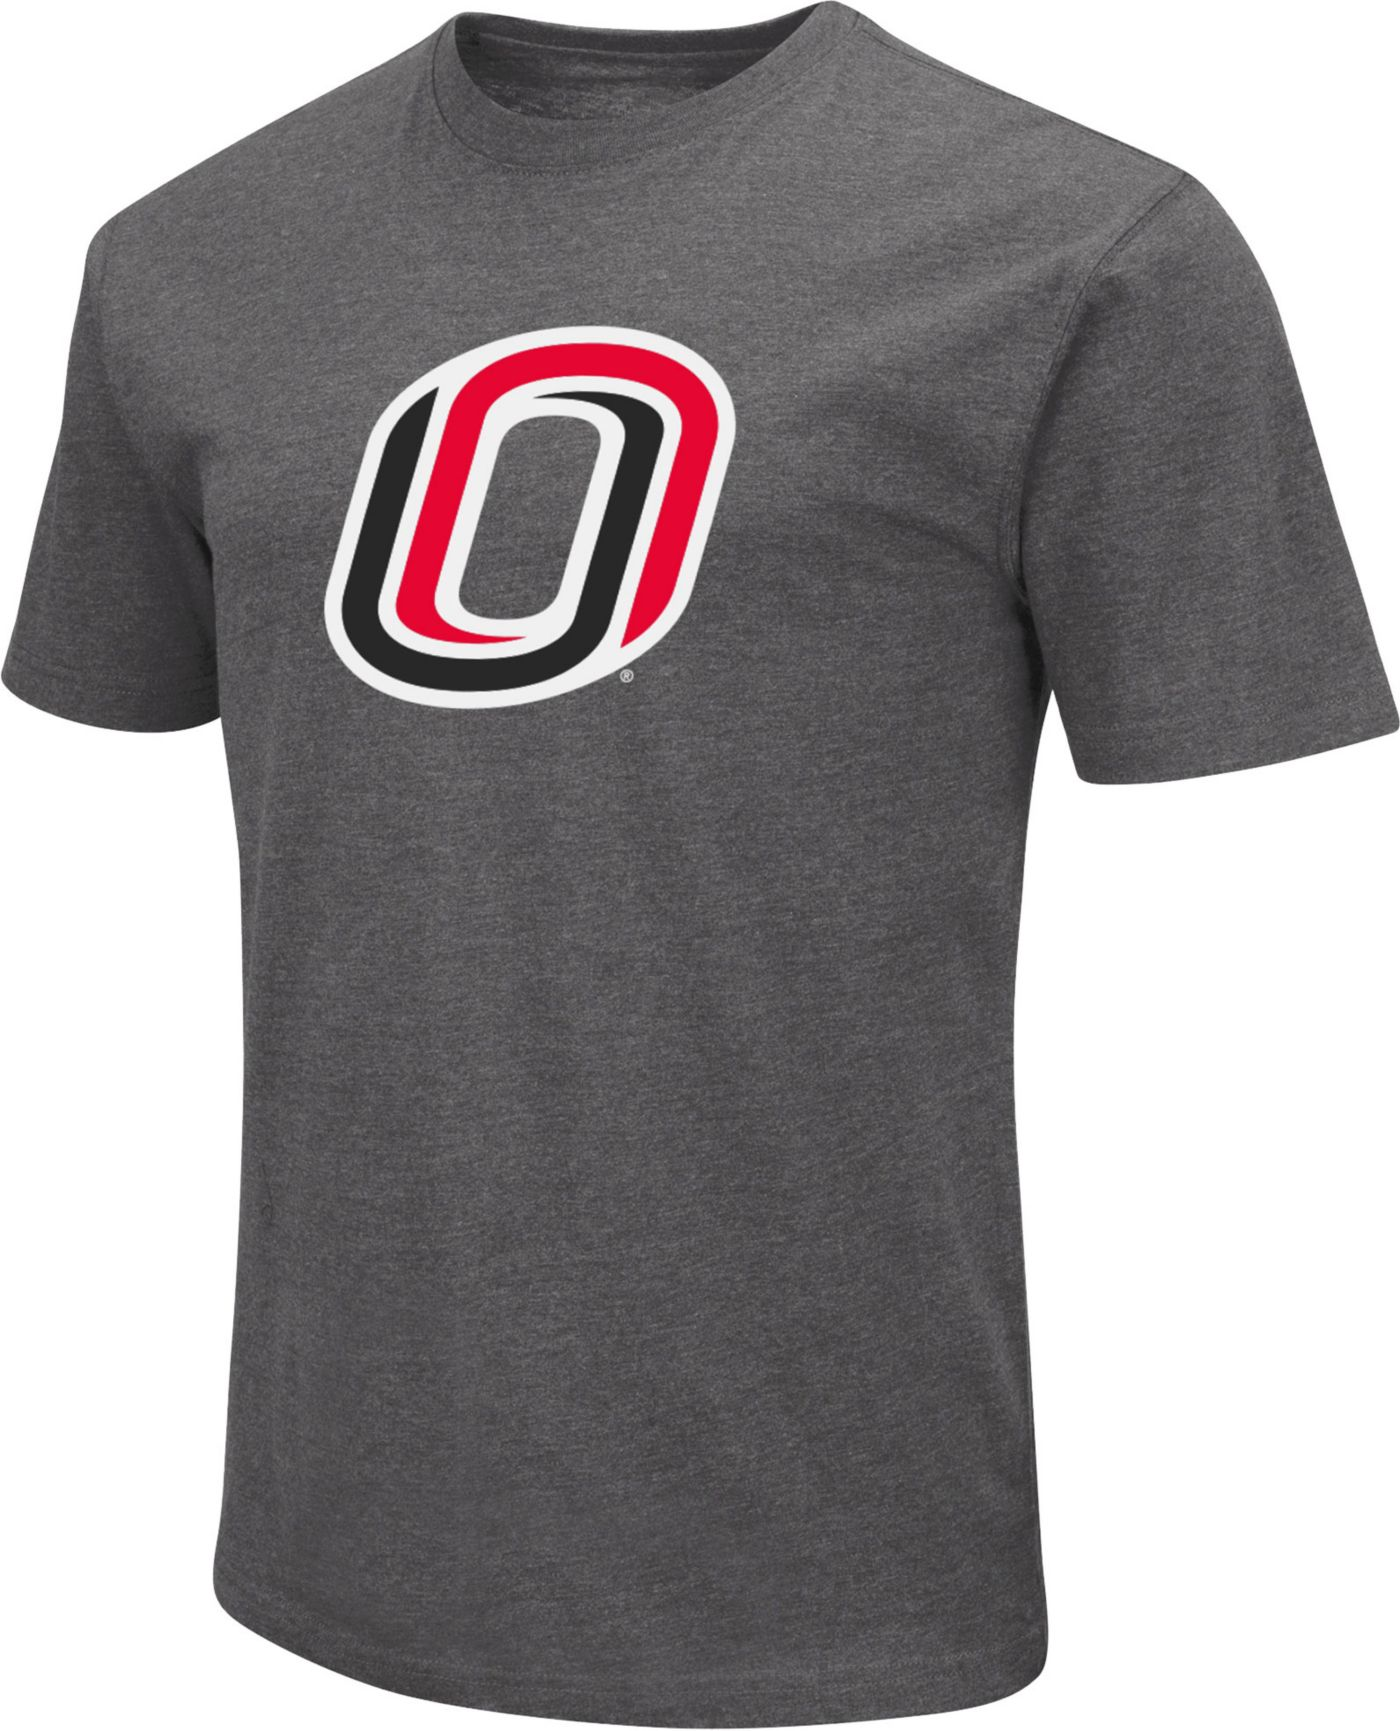 Colosseum Men's Nebraska- Omaha Mavericks Grey Dual Blend T-Shirt